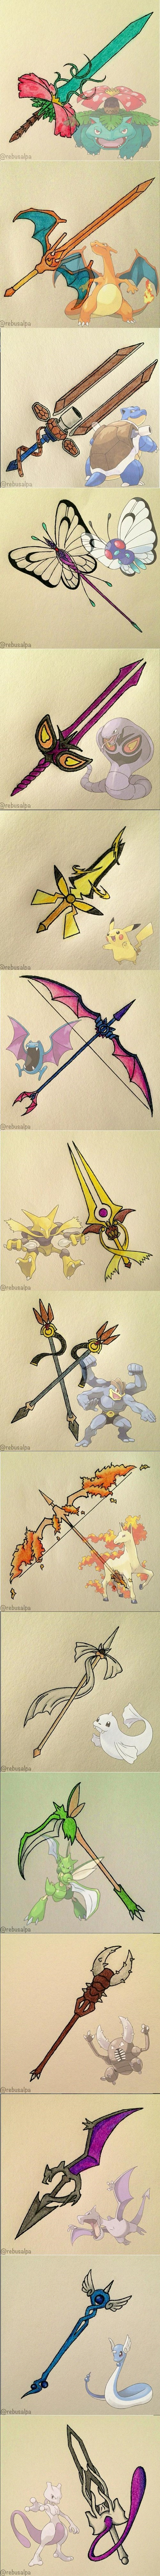 art Pokémon weapons - 8248963840